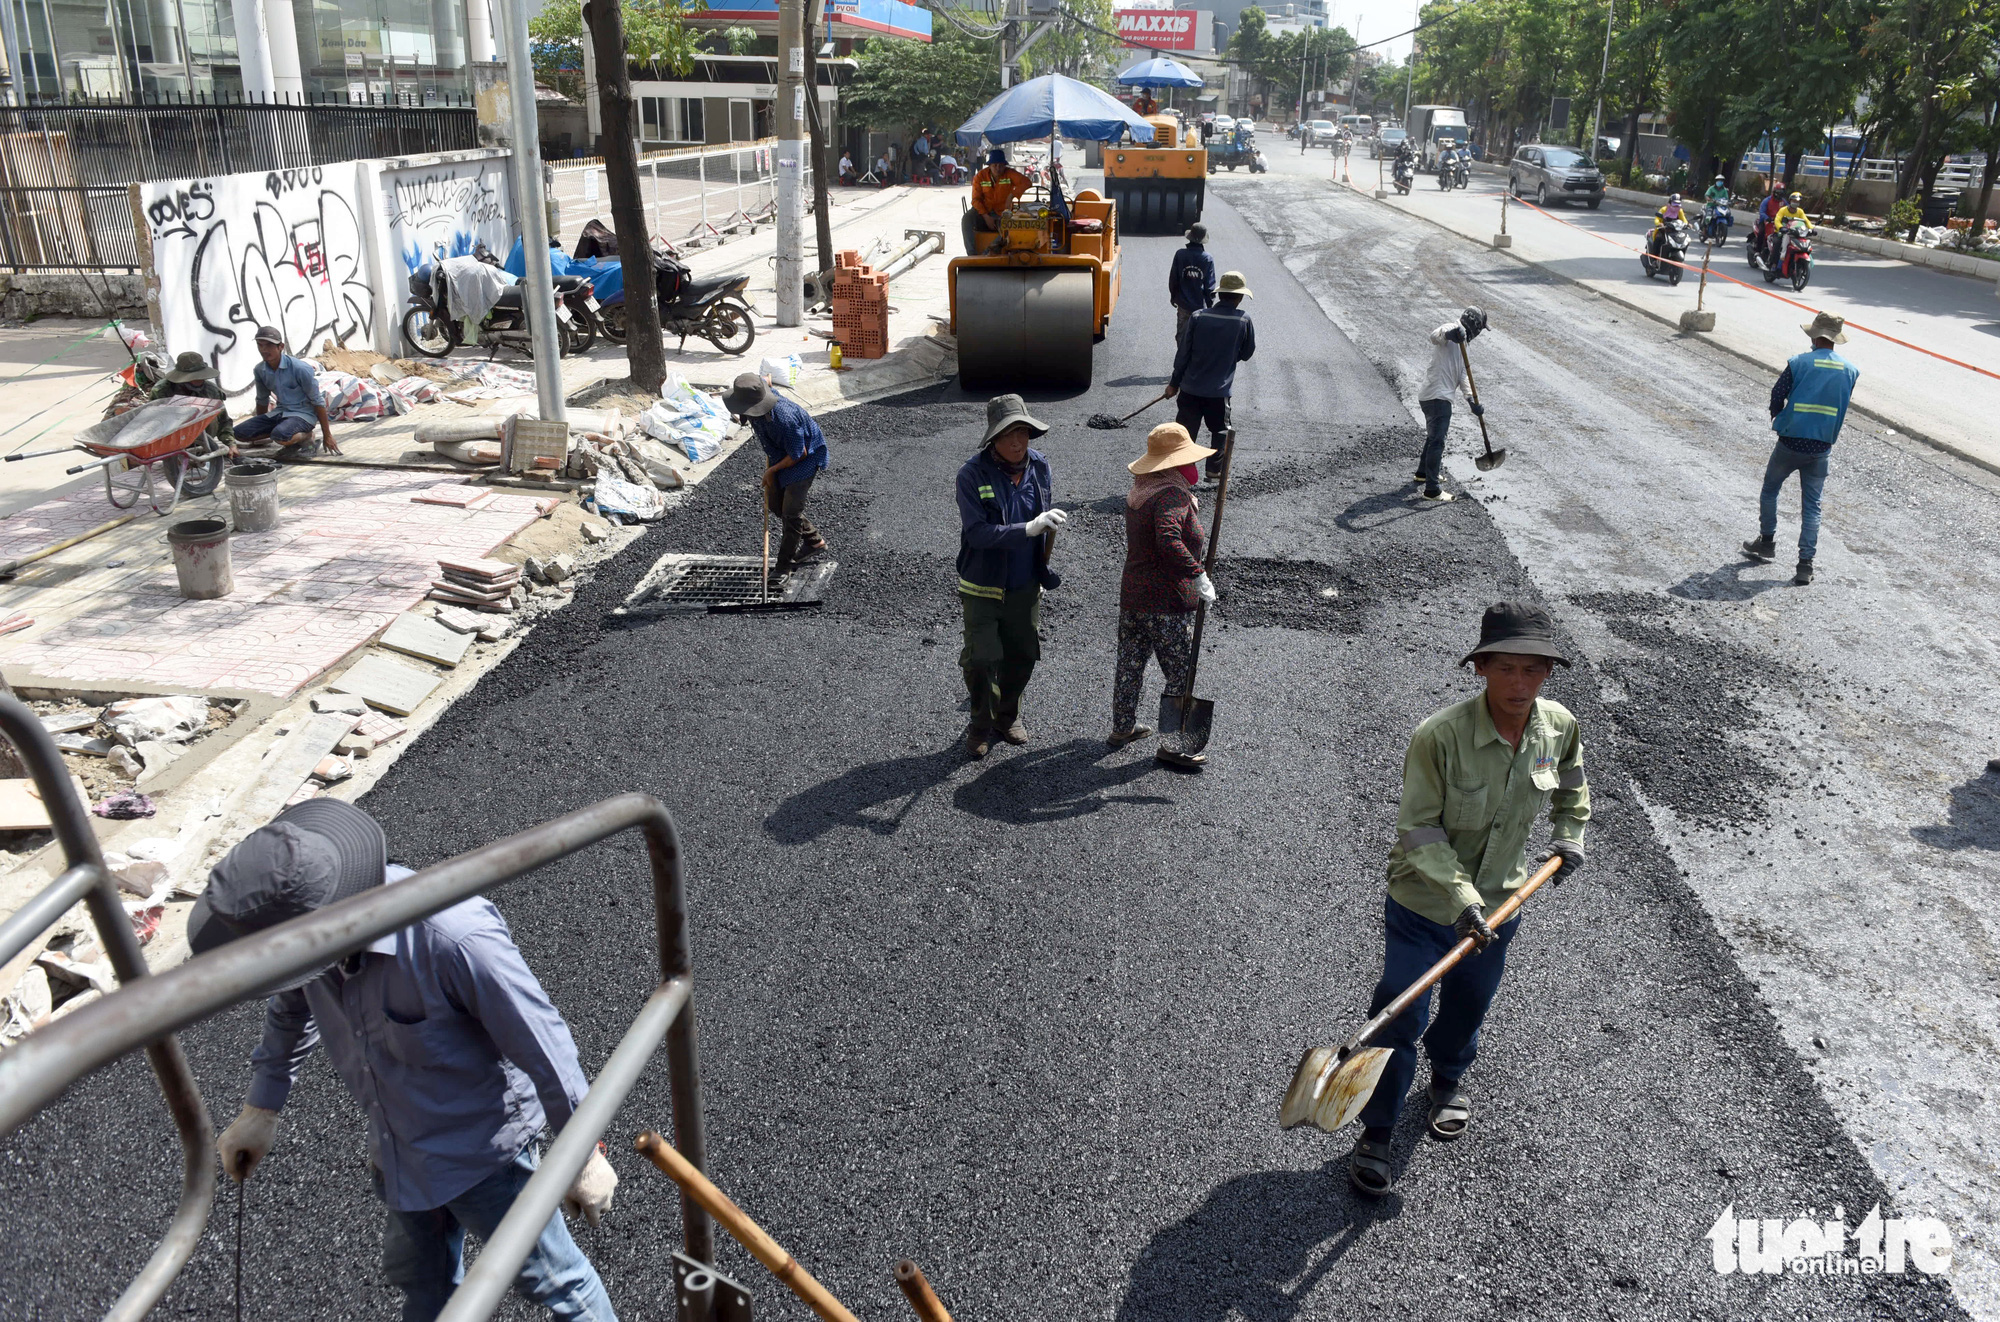 Construction workers work at the upgrade project of Nguyen Huu Canh Street in Binh Thanh District, Ho Chi Minh City, April 28, 2021. Photo: Le Phan / Tuoi Tre